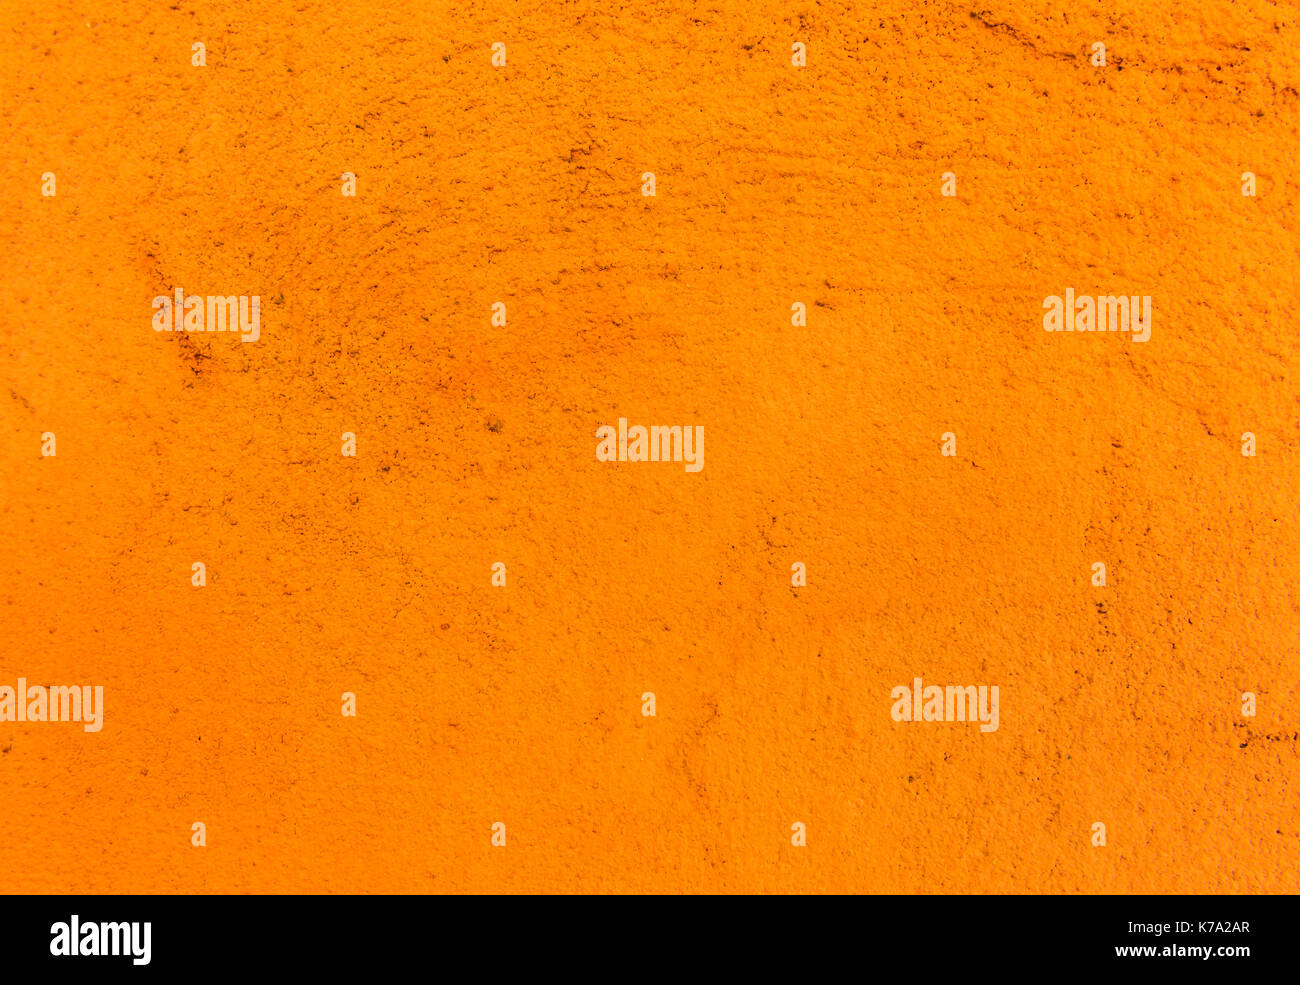 Orange Cement Wall : Smooth cement wall stock photos